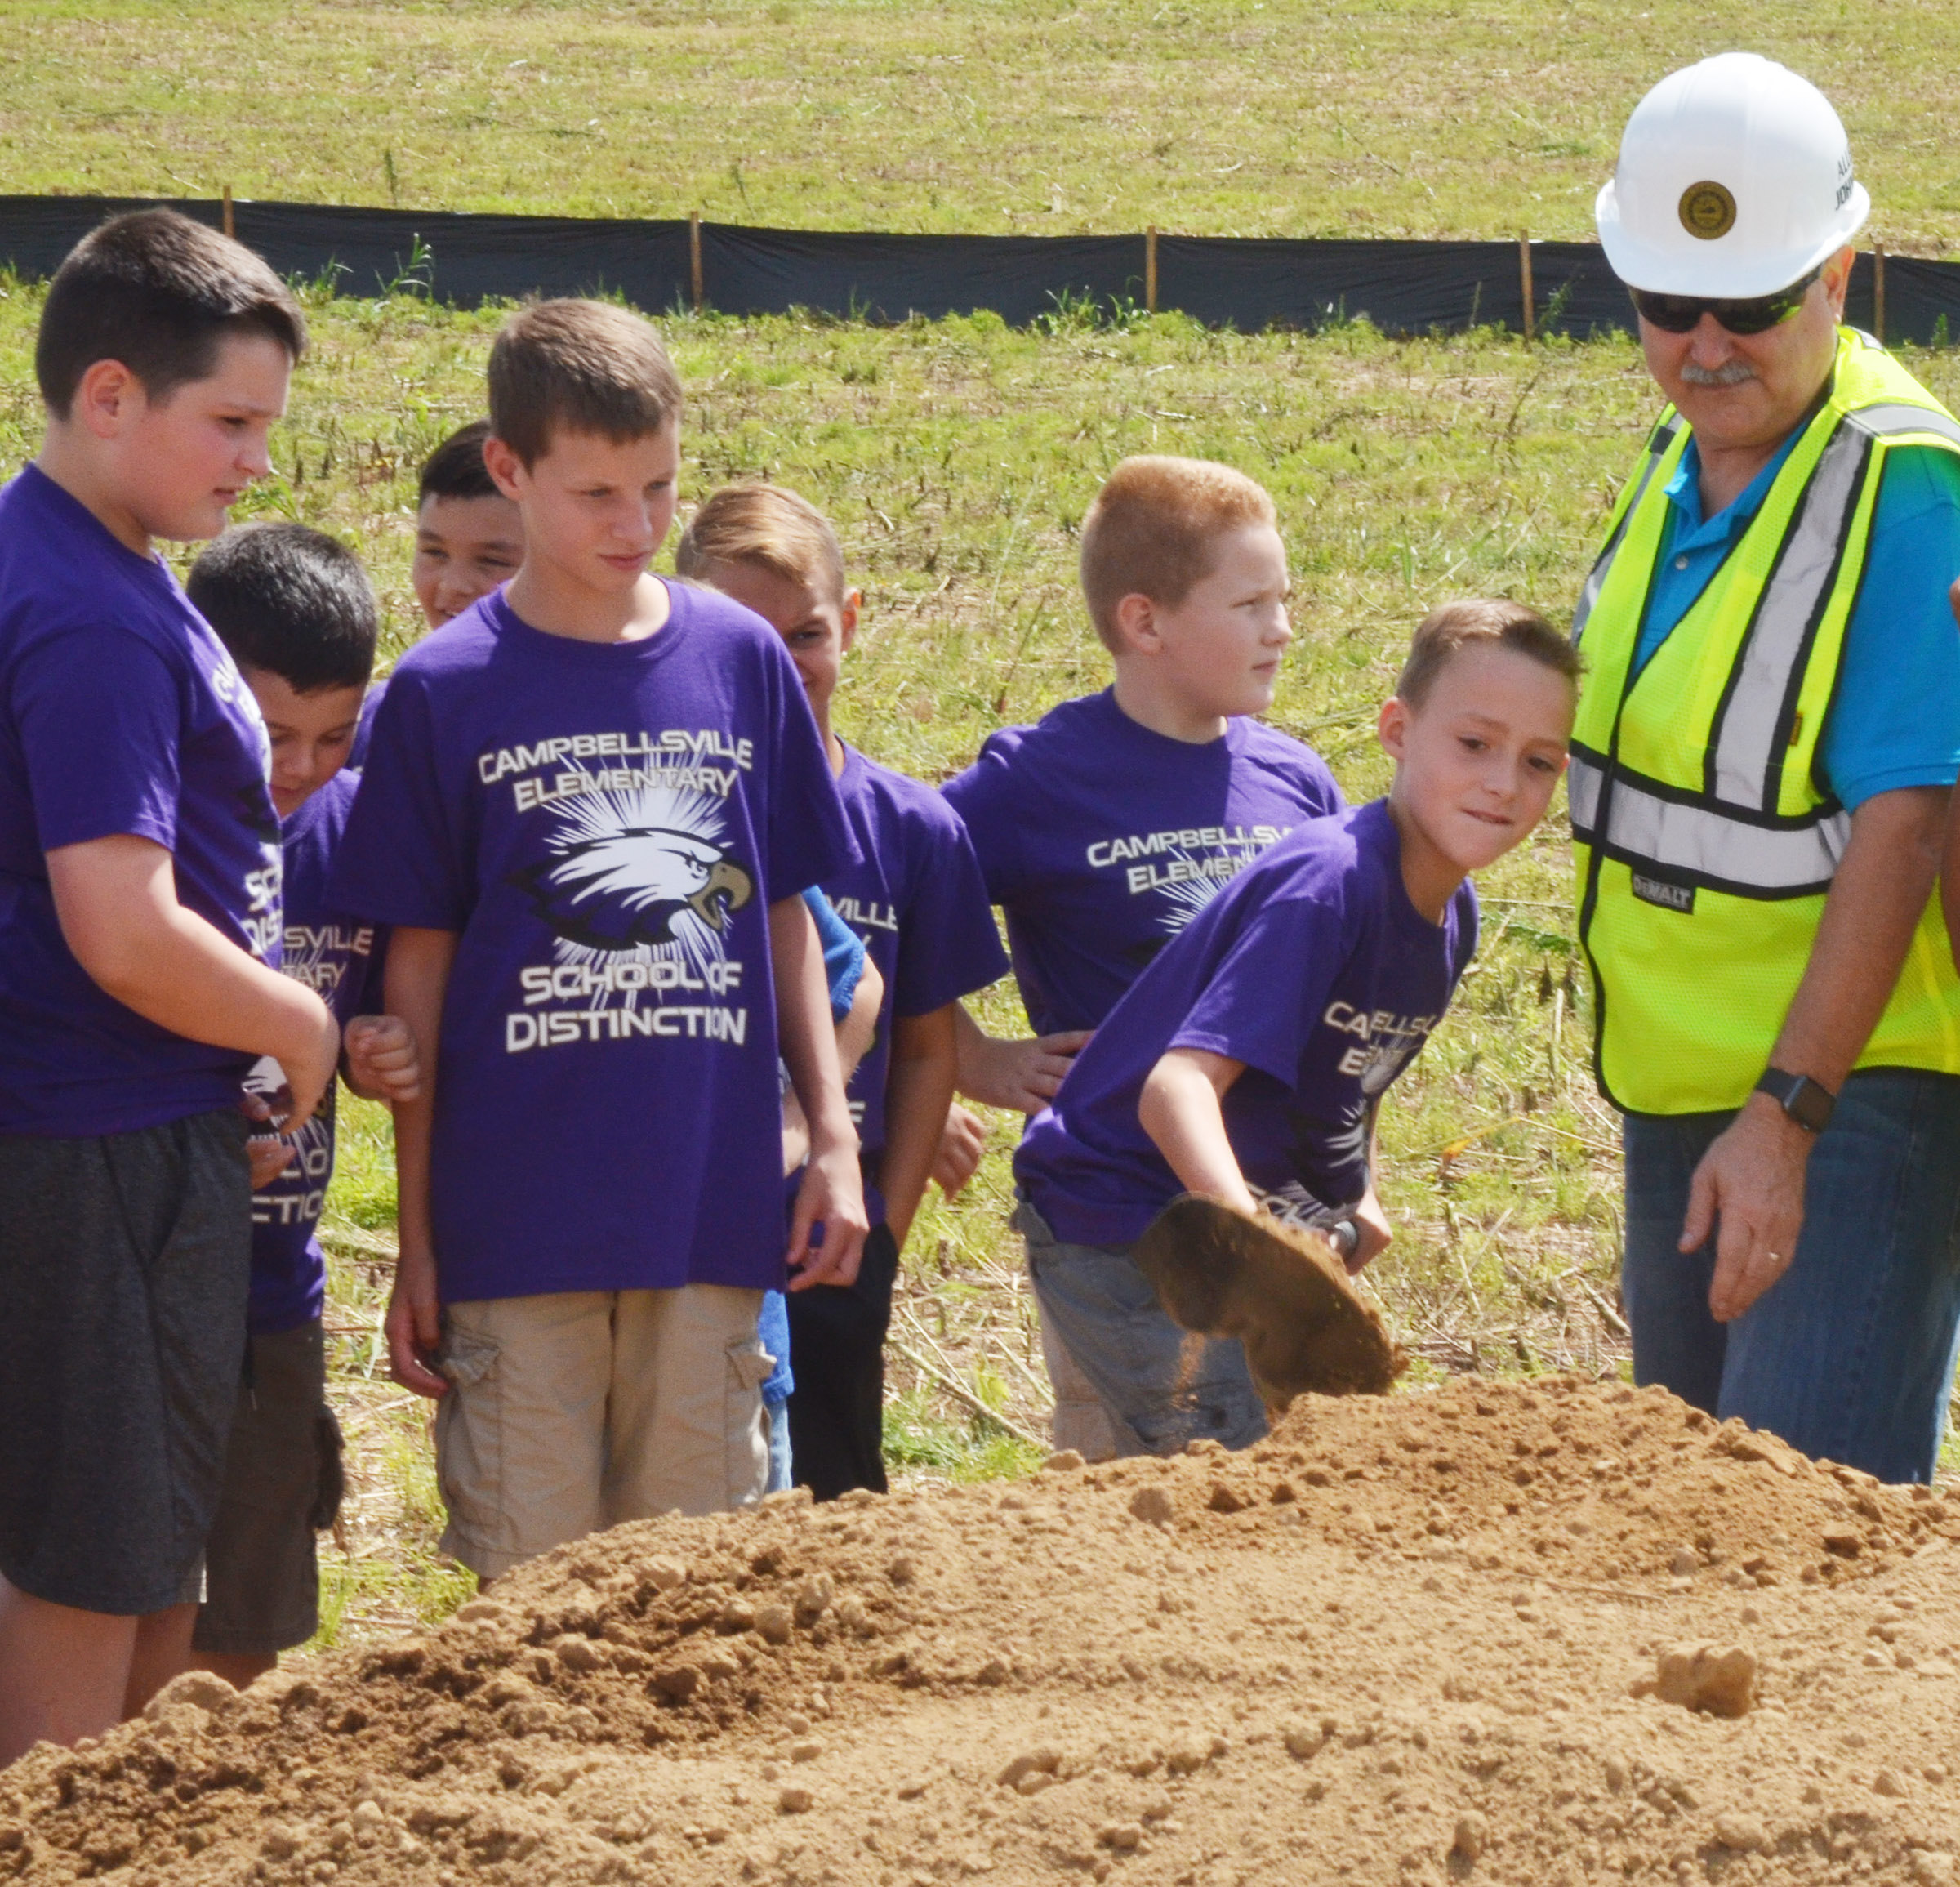 CES fourth-grader Caysen Tungate breaks ground for the sports complex with Campbellsville City Council member Allen Johnson.